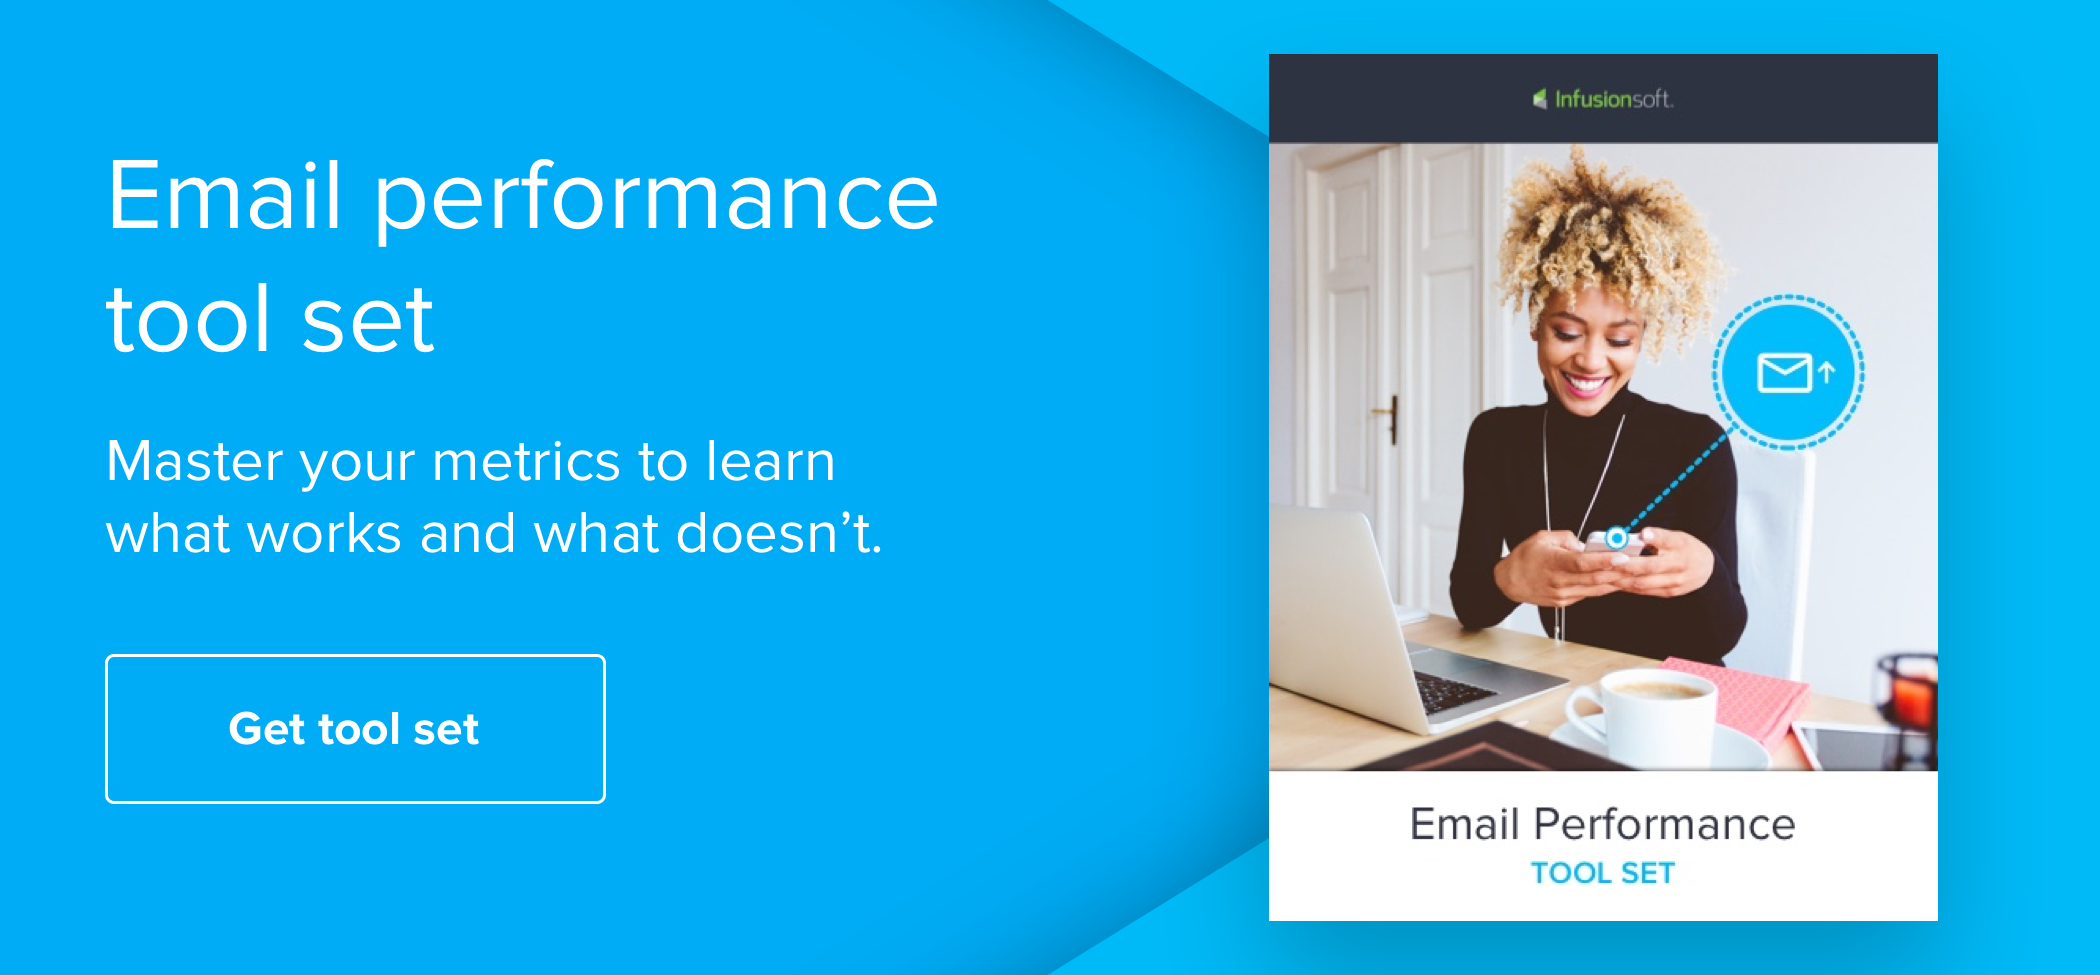 email performance tool set cta.png